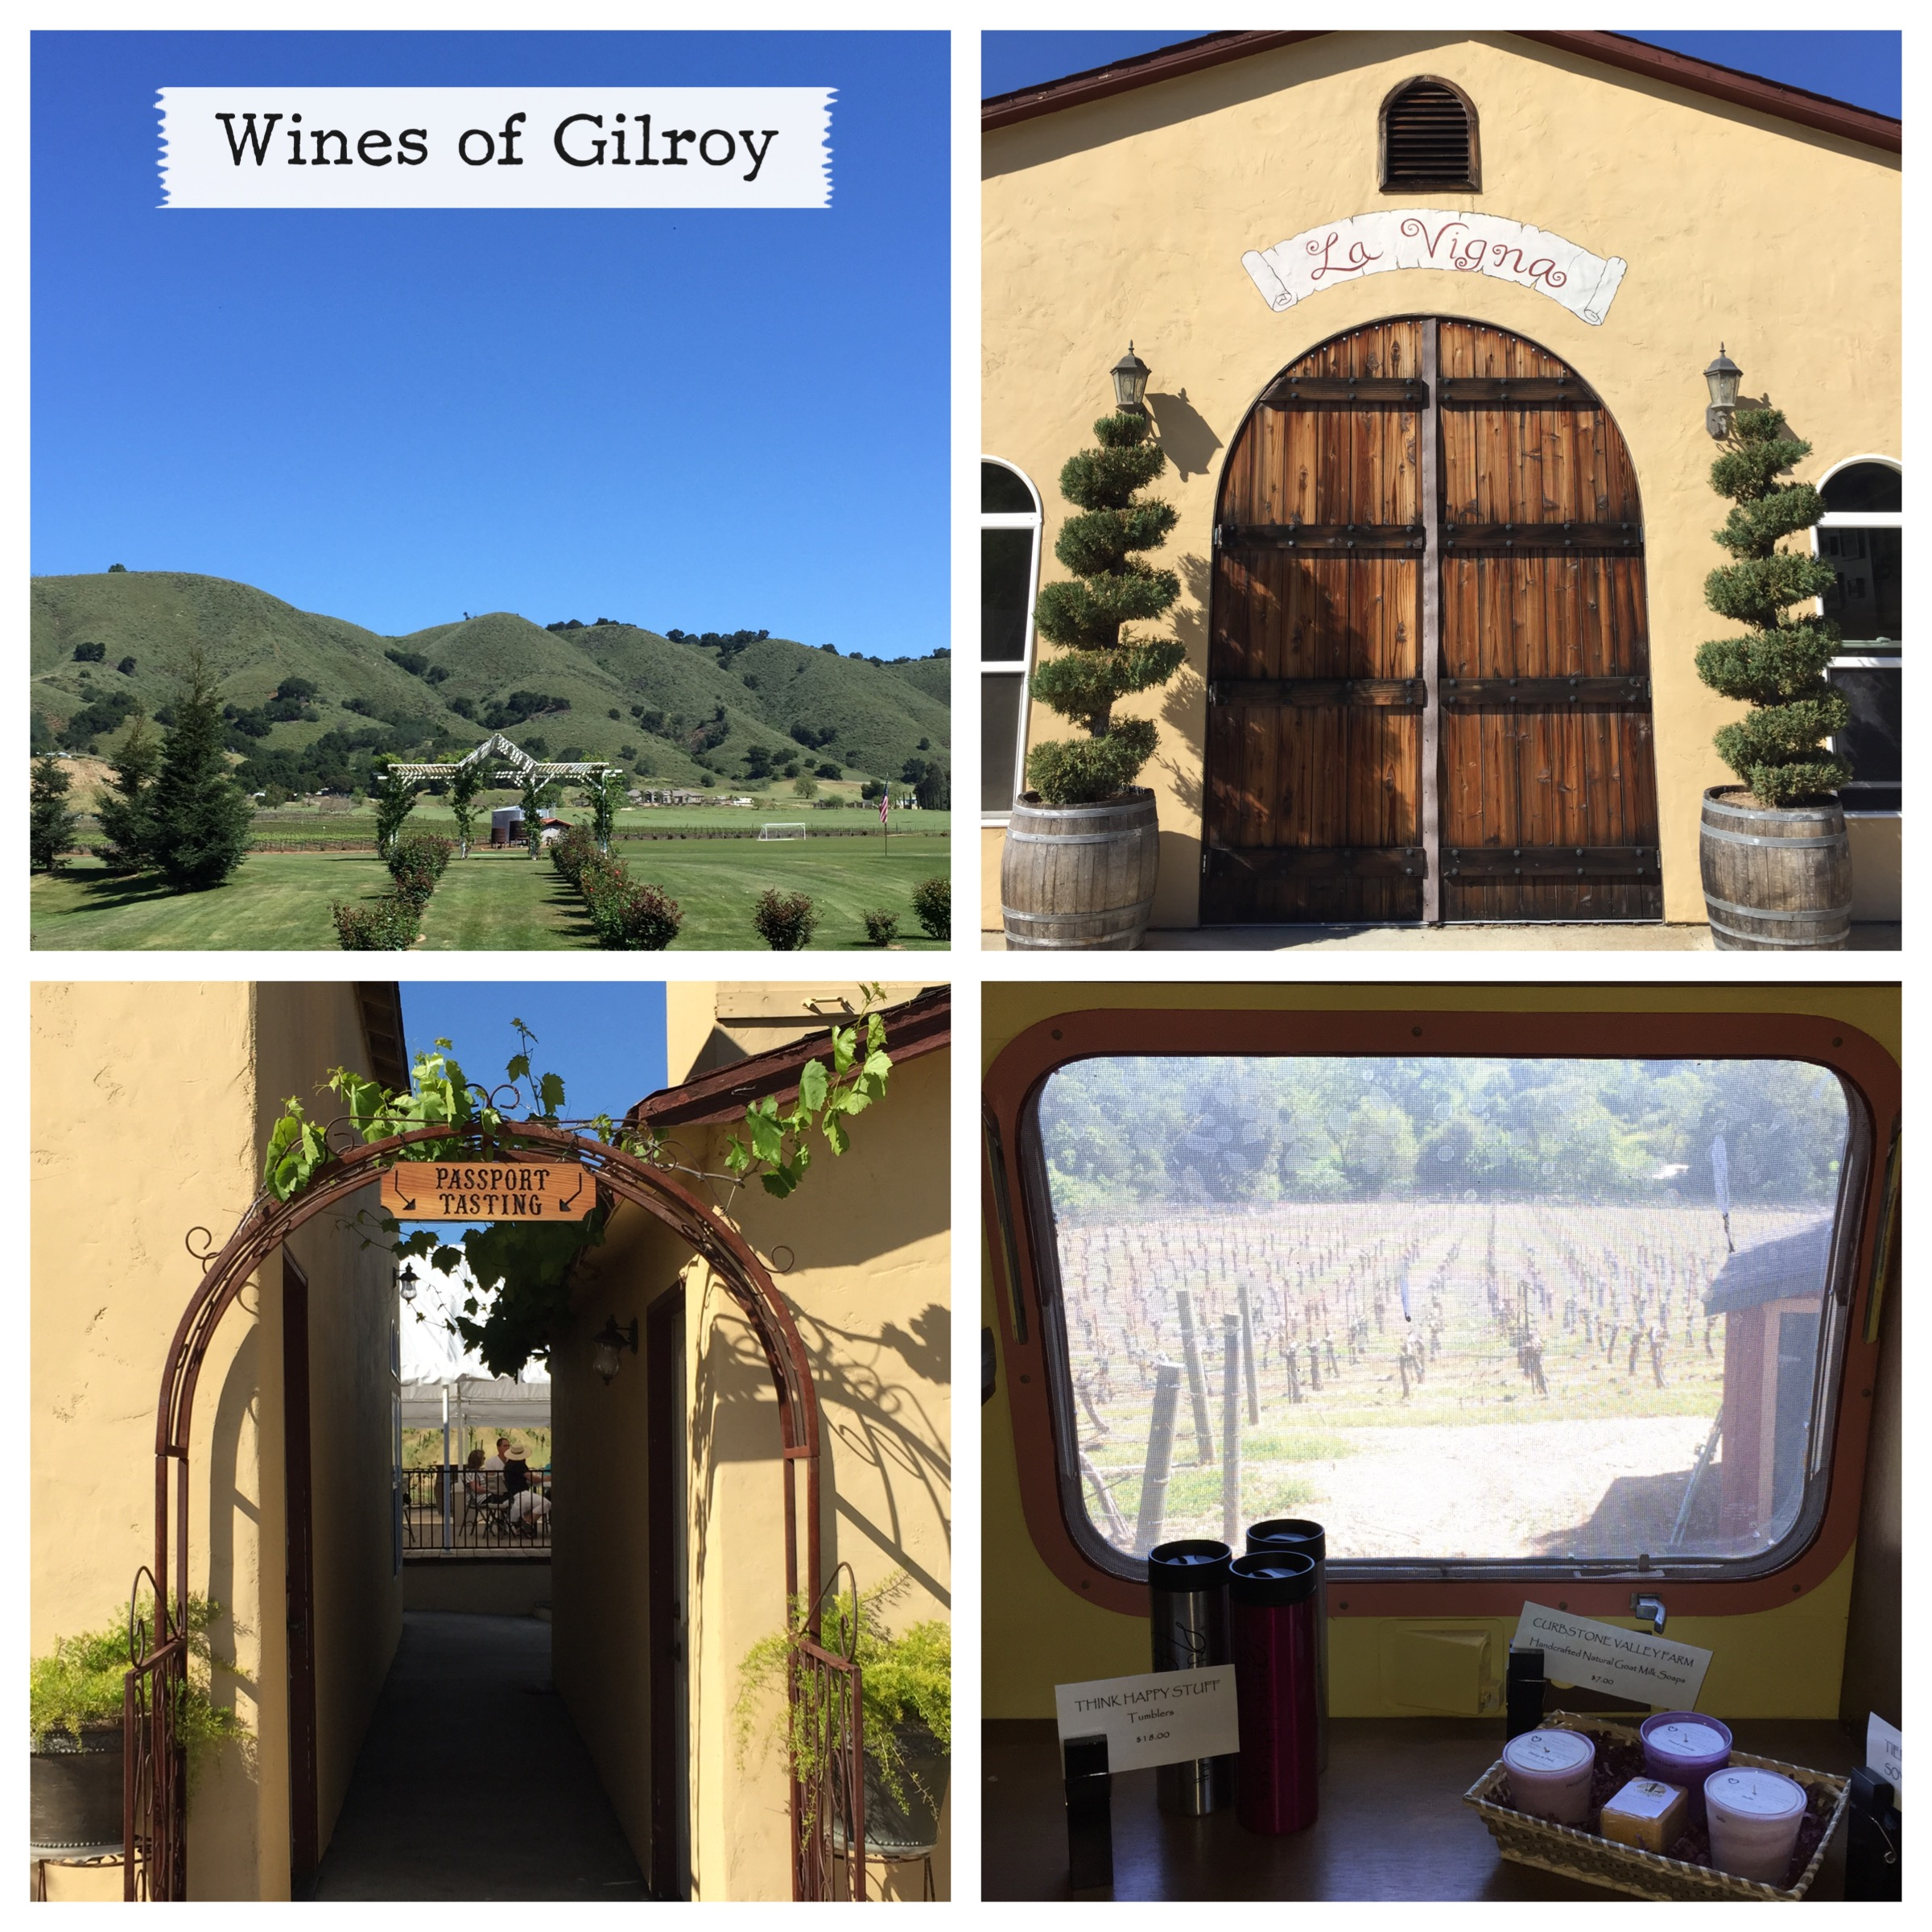 Wineries of Gilroy